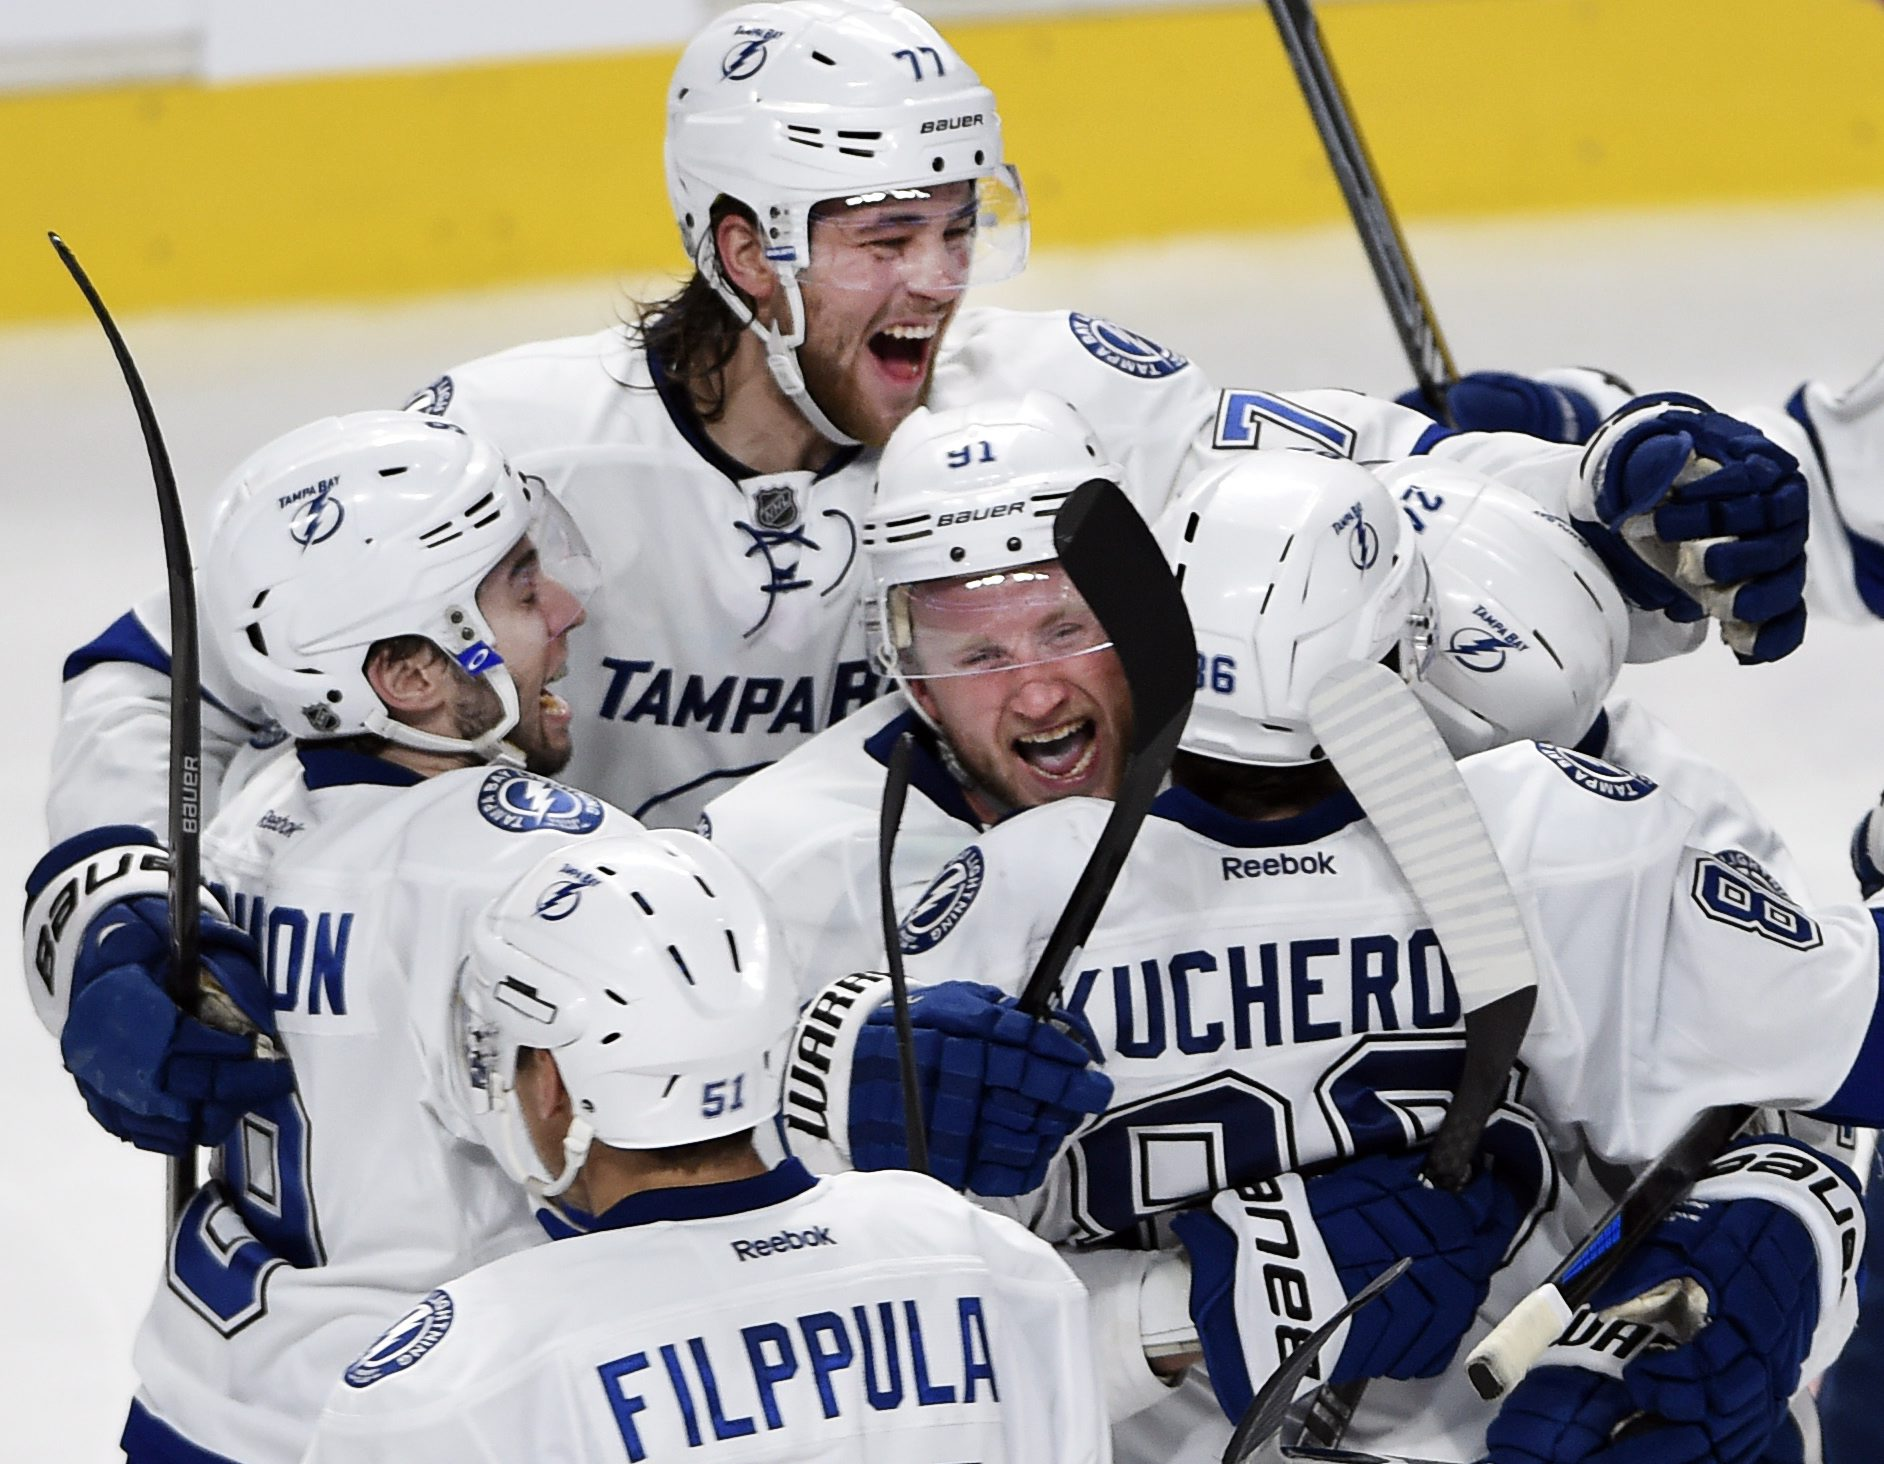 Tampa Bay Lightning right wing Nikita Kucherov (86) is hugged by Lightning center Steven Stamkos (91) as he celebrates with teammates after scoring the winning goal during the second overtime against the Montreal Canadiens of Game 1 of second-round playof